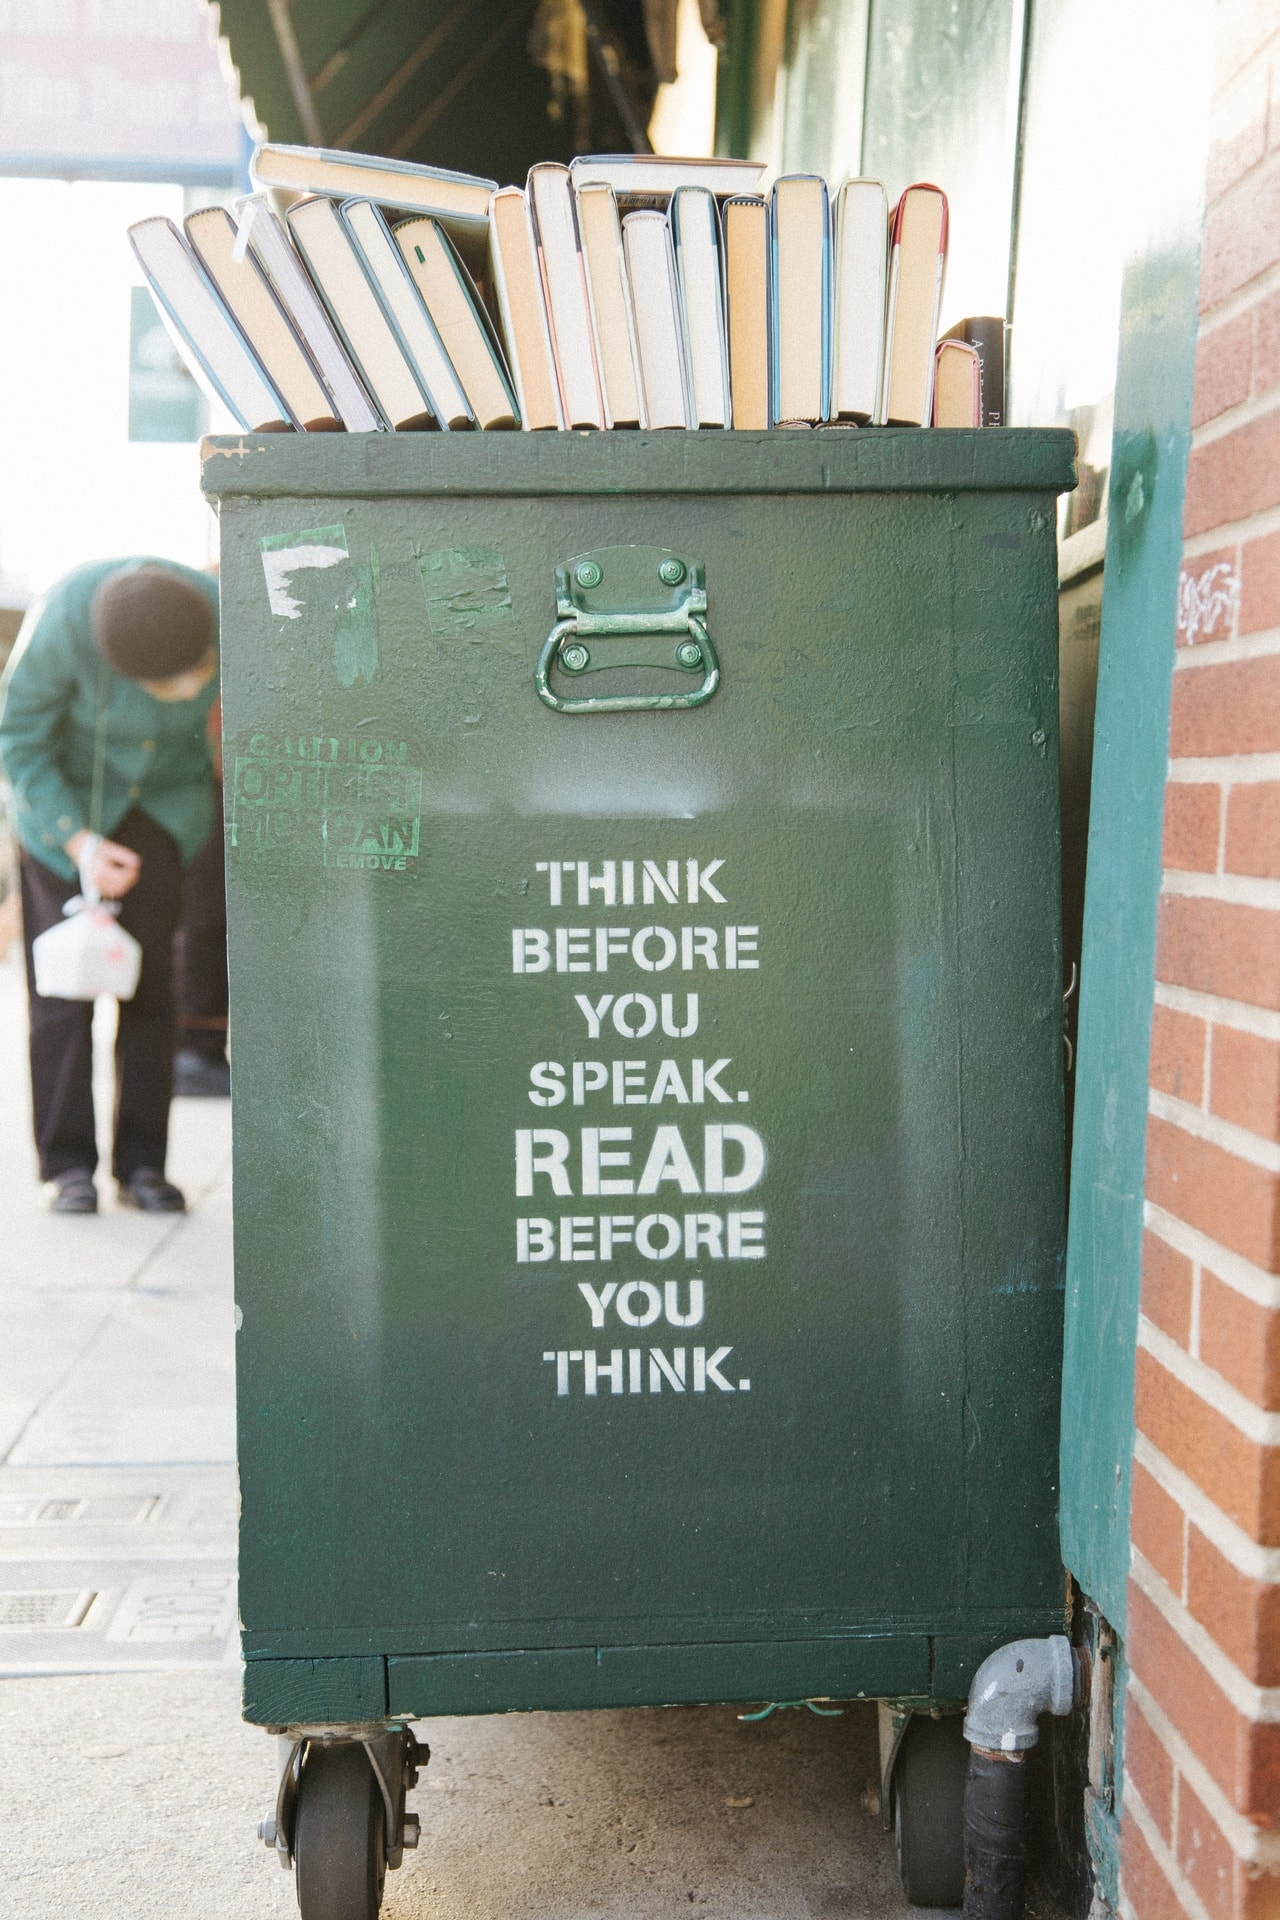 [Image] Think Before You Speak. Read Before You Think.